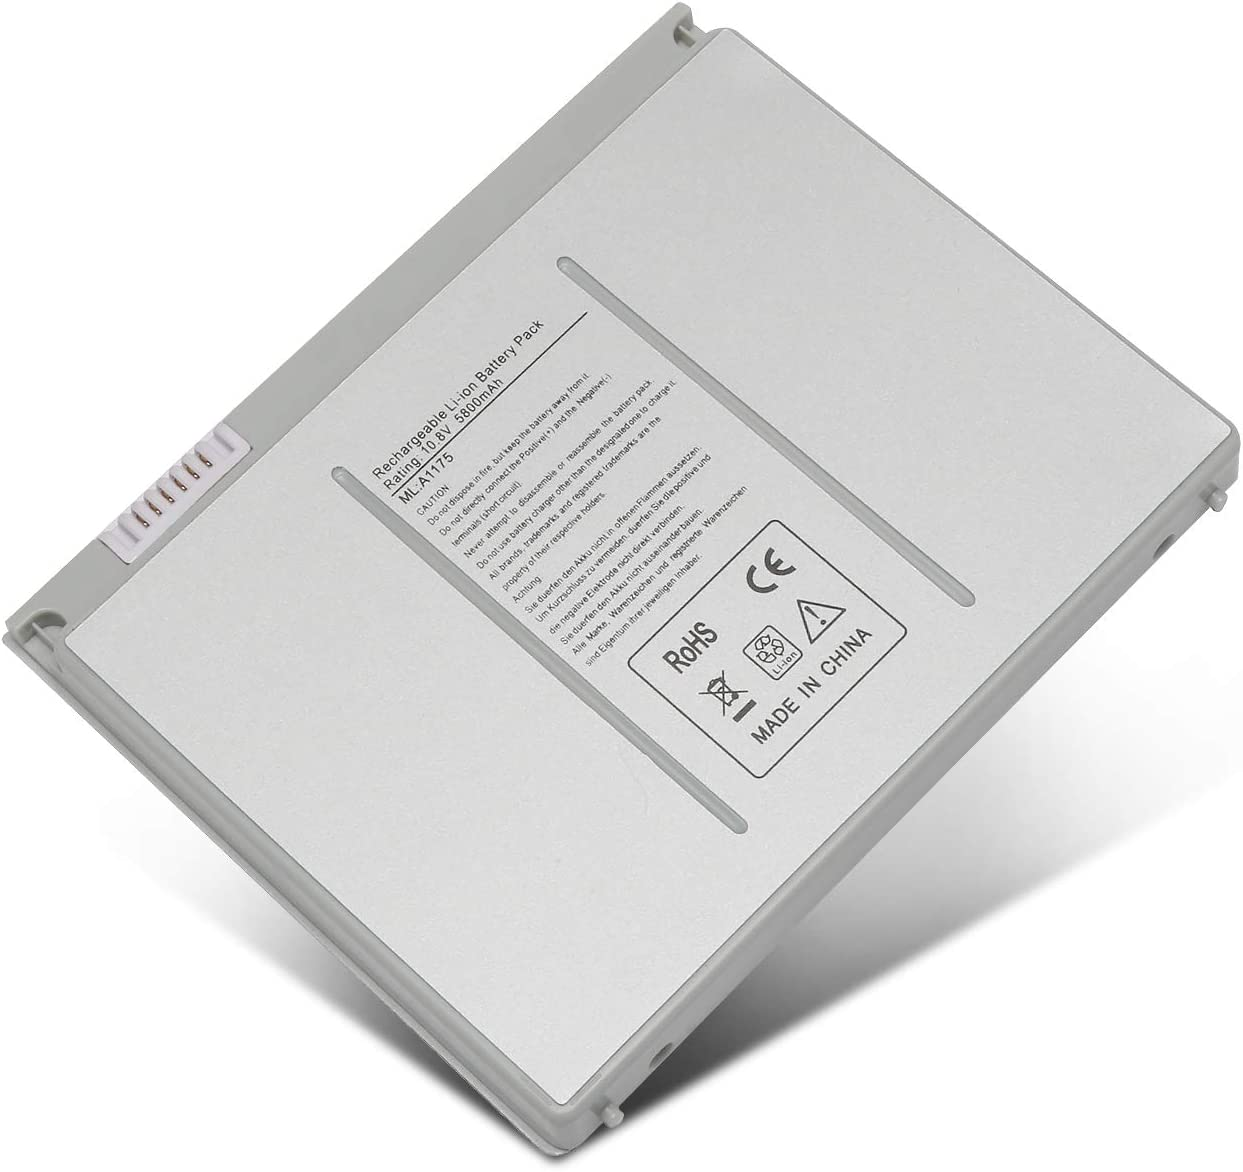 SOLICE A1175 A1260 A1211 A1226 A1150 (only for 2006 2007 2008 Version) New Li-ion Laptop Battery for Apple MacBook Pro 15 inch MA348 M6099 MA348/A MA348G/A MA348J/A Laptop [10.8V 5800Mah]